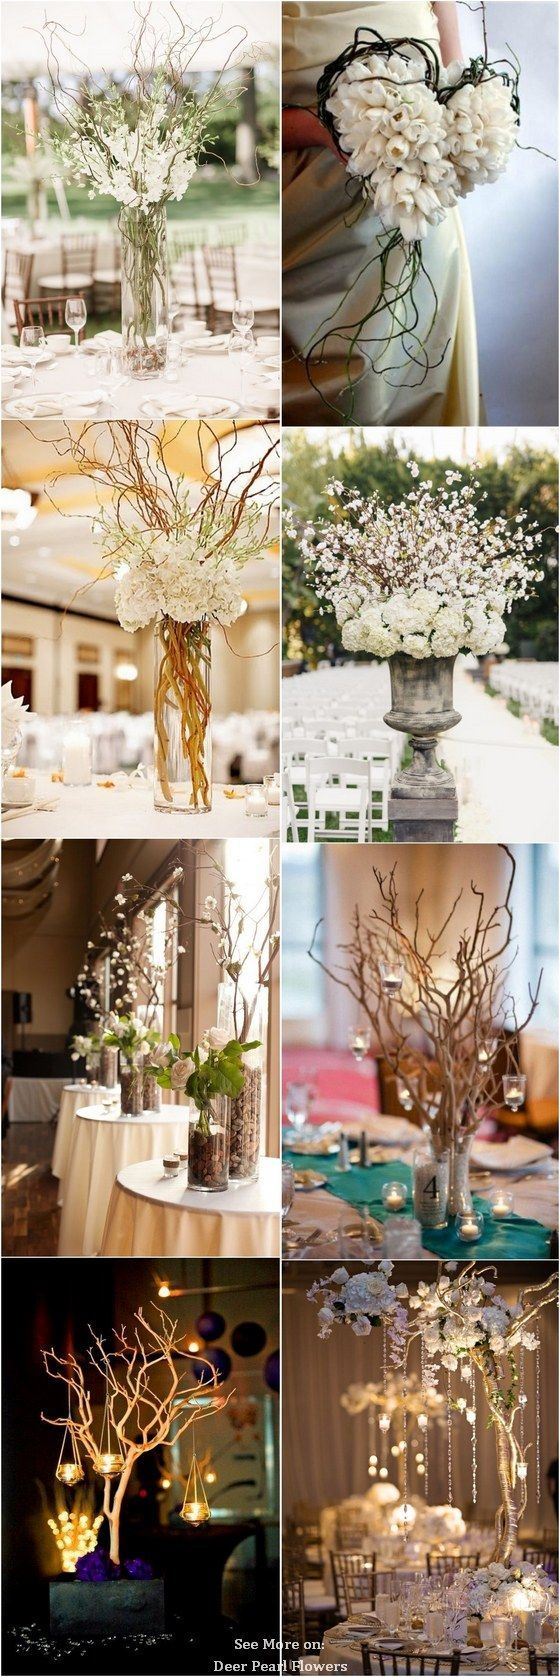 30 rustic twigs and branches wedding ideas. Black Bedroom Furniture Sets. Home Design Ideas